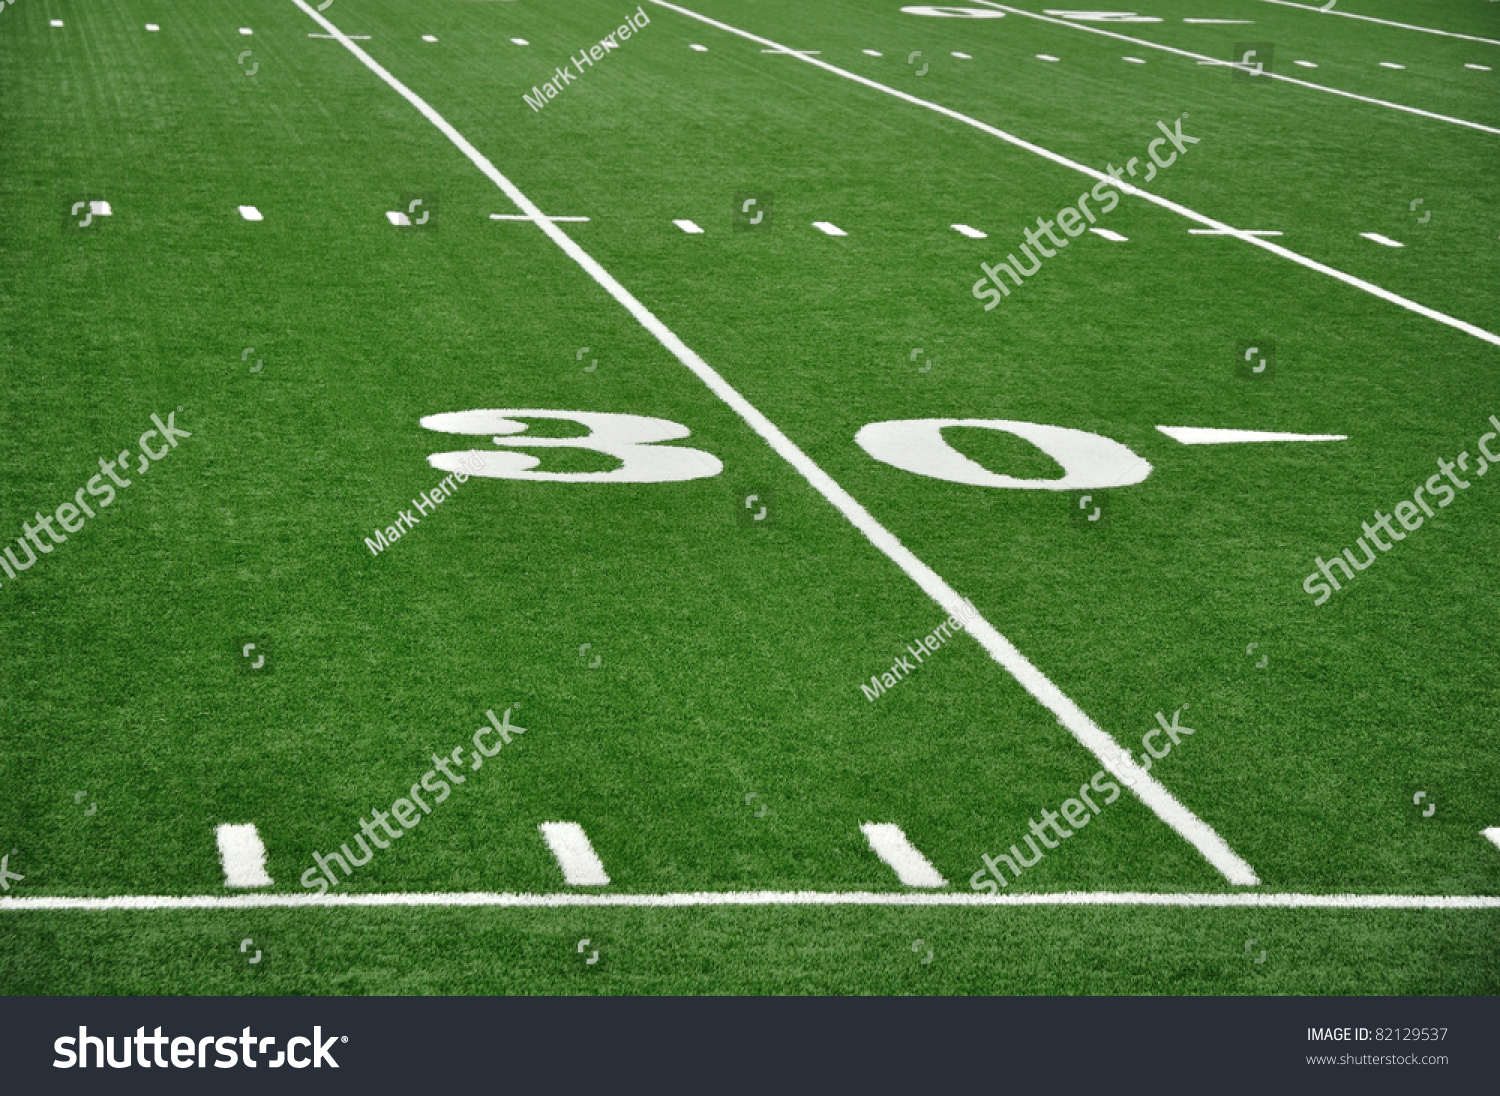 Football Field Diagram With Hash Marks On American Download